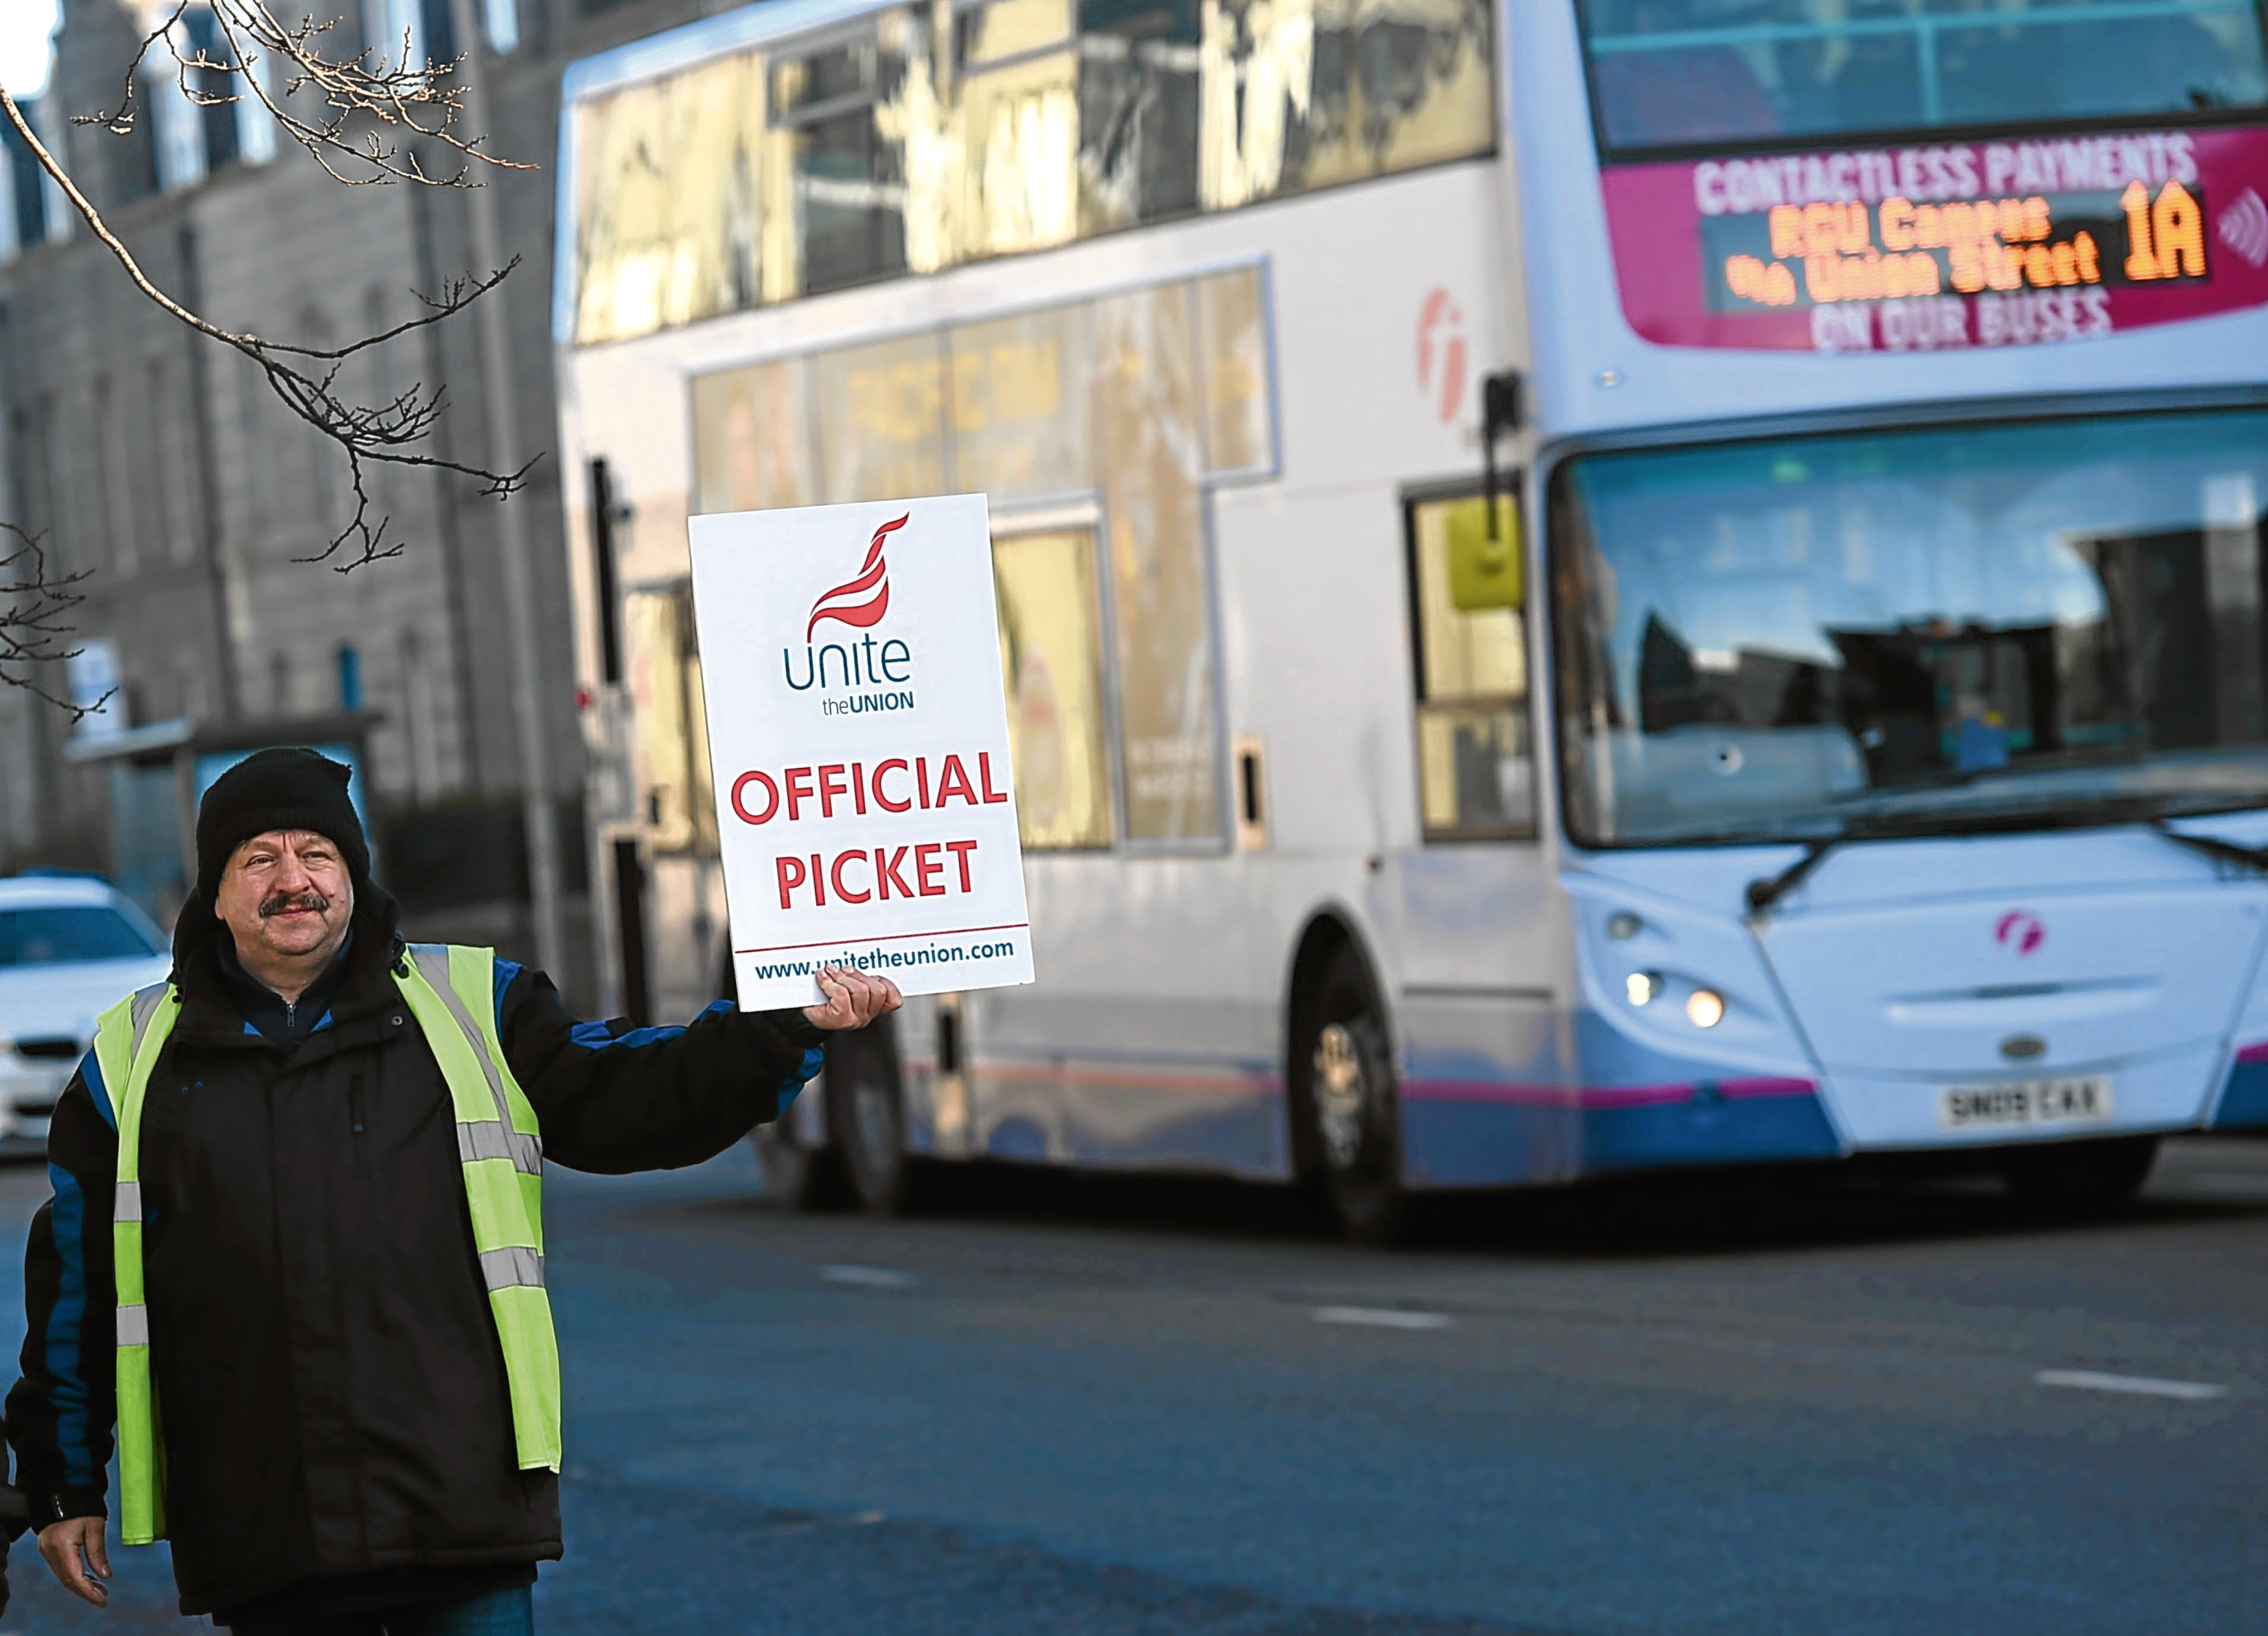 Bus drivers in Aberdeen were on strike last month in a dispute over contract changes